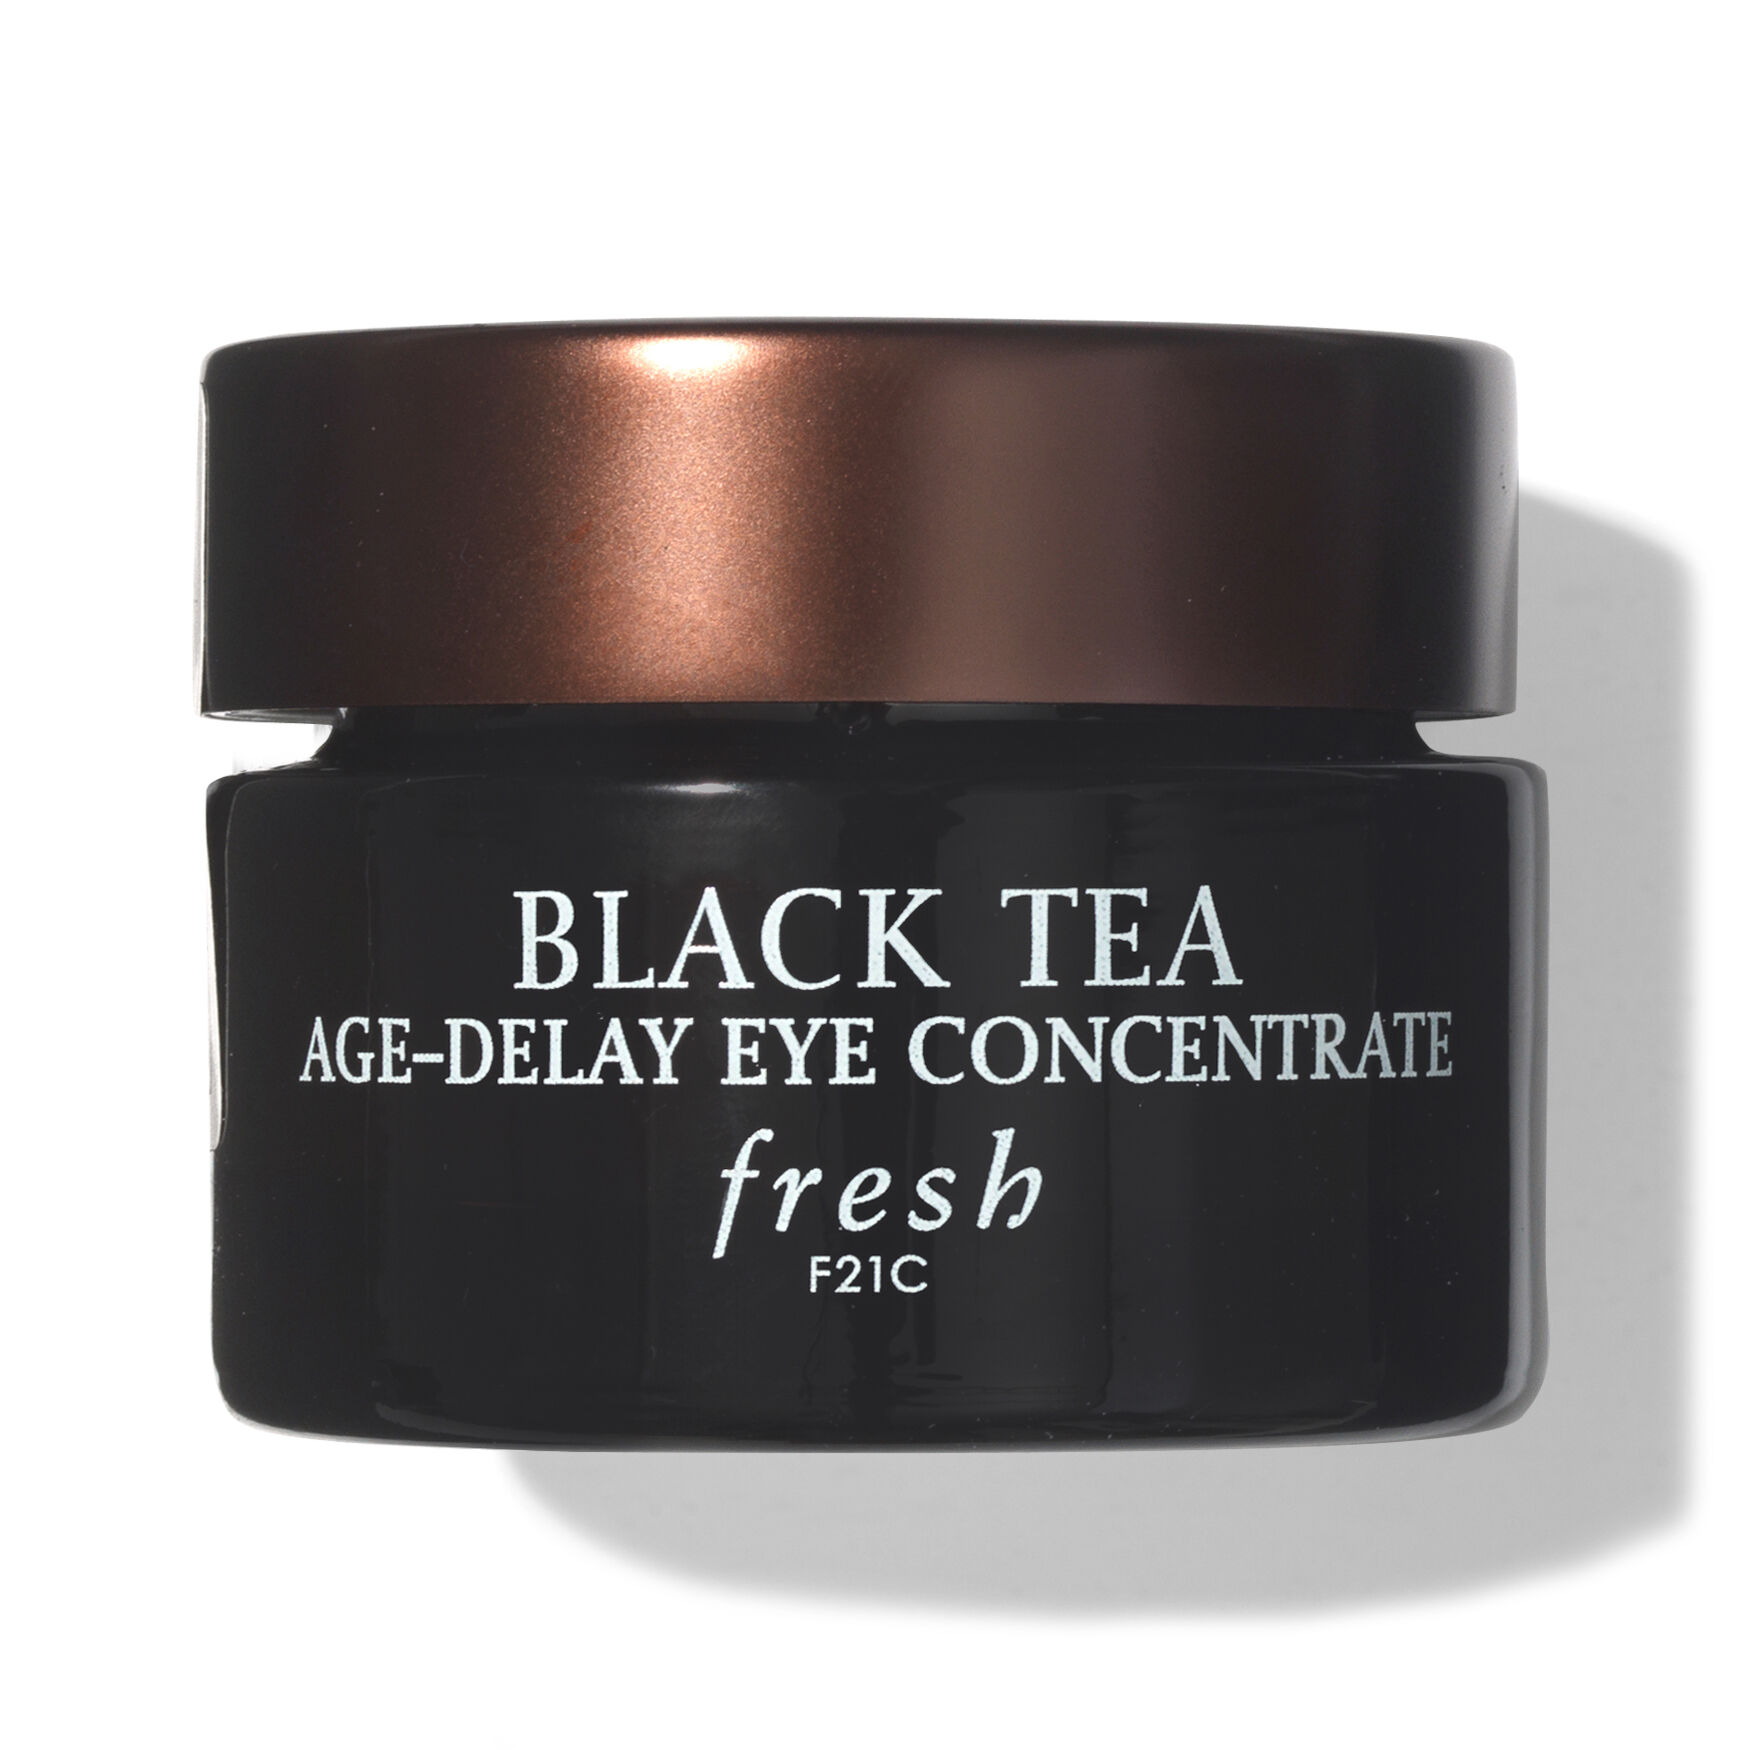 Fresh Black Tea Age Delay Eye Concentrate Space Nk